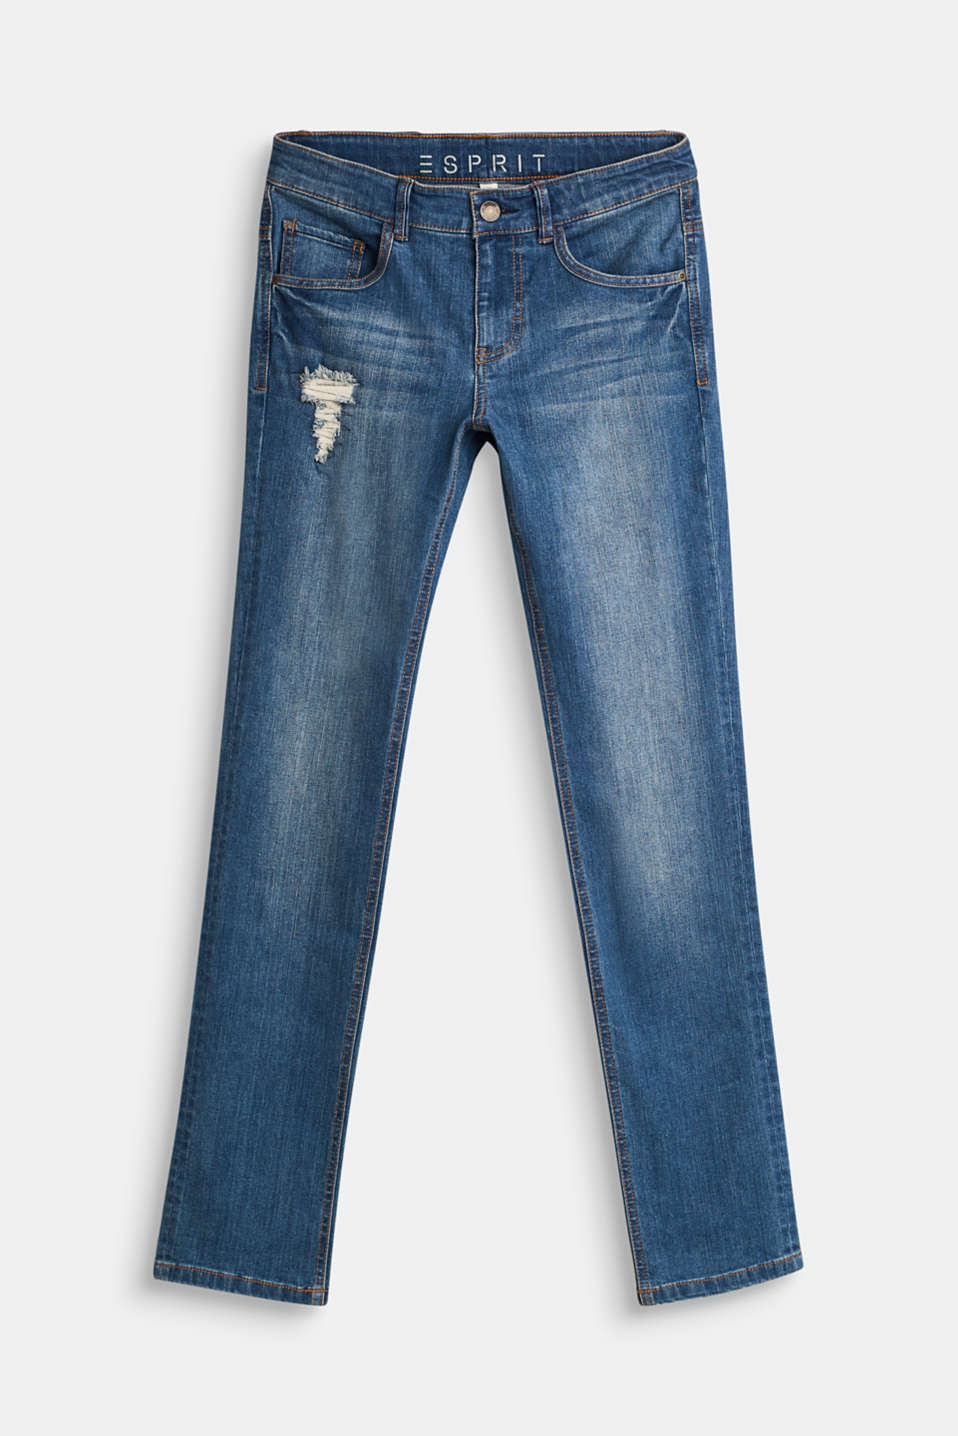 Esprit - Distressed stretch jeans with an adjustable waistband